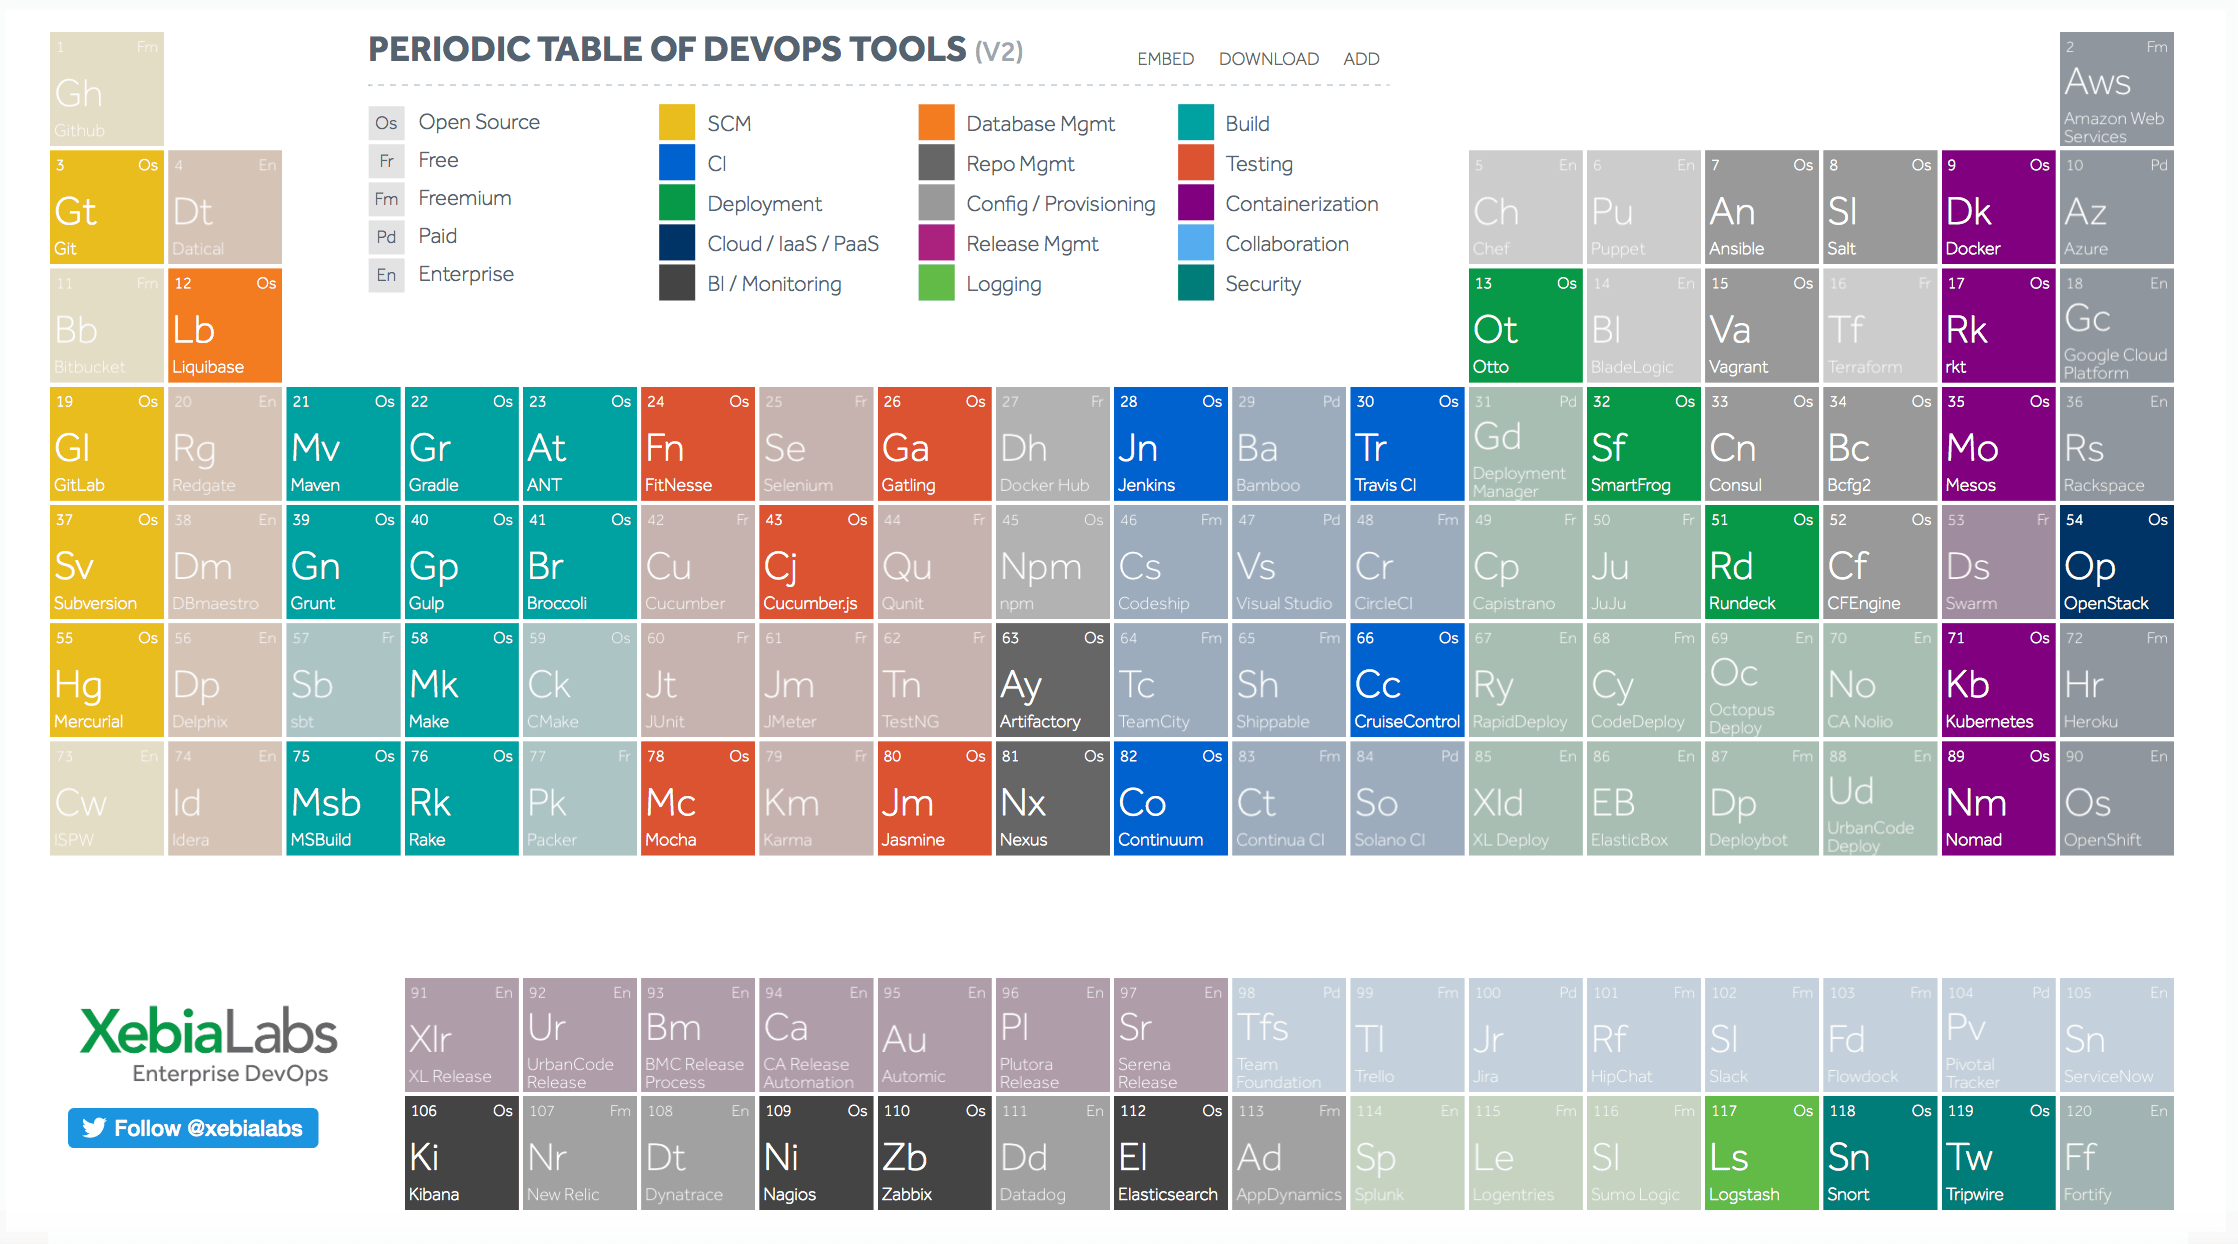 XebiaLabs' Periodic Table of DevOps Tools highlighting some open source software tools.